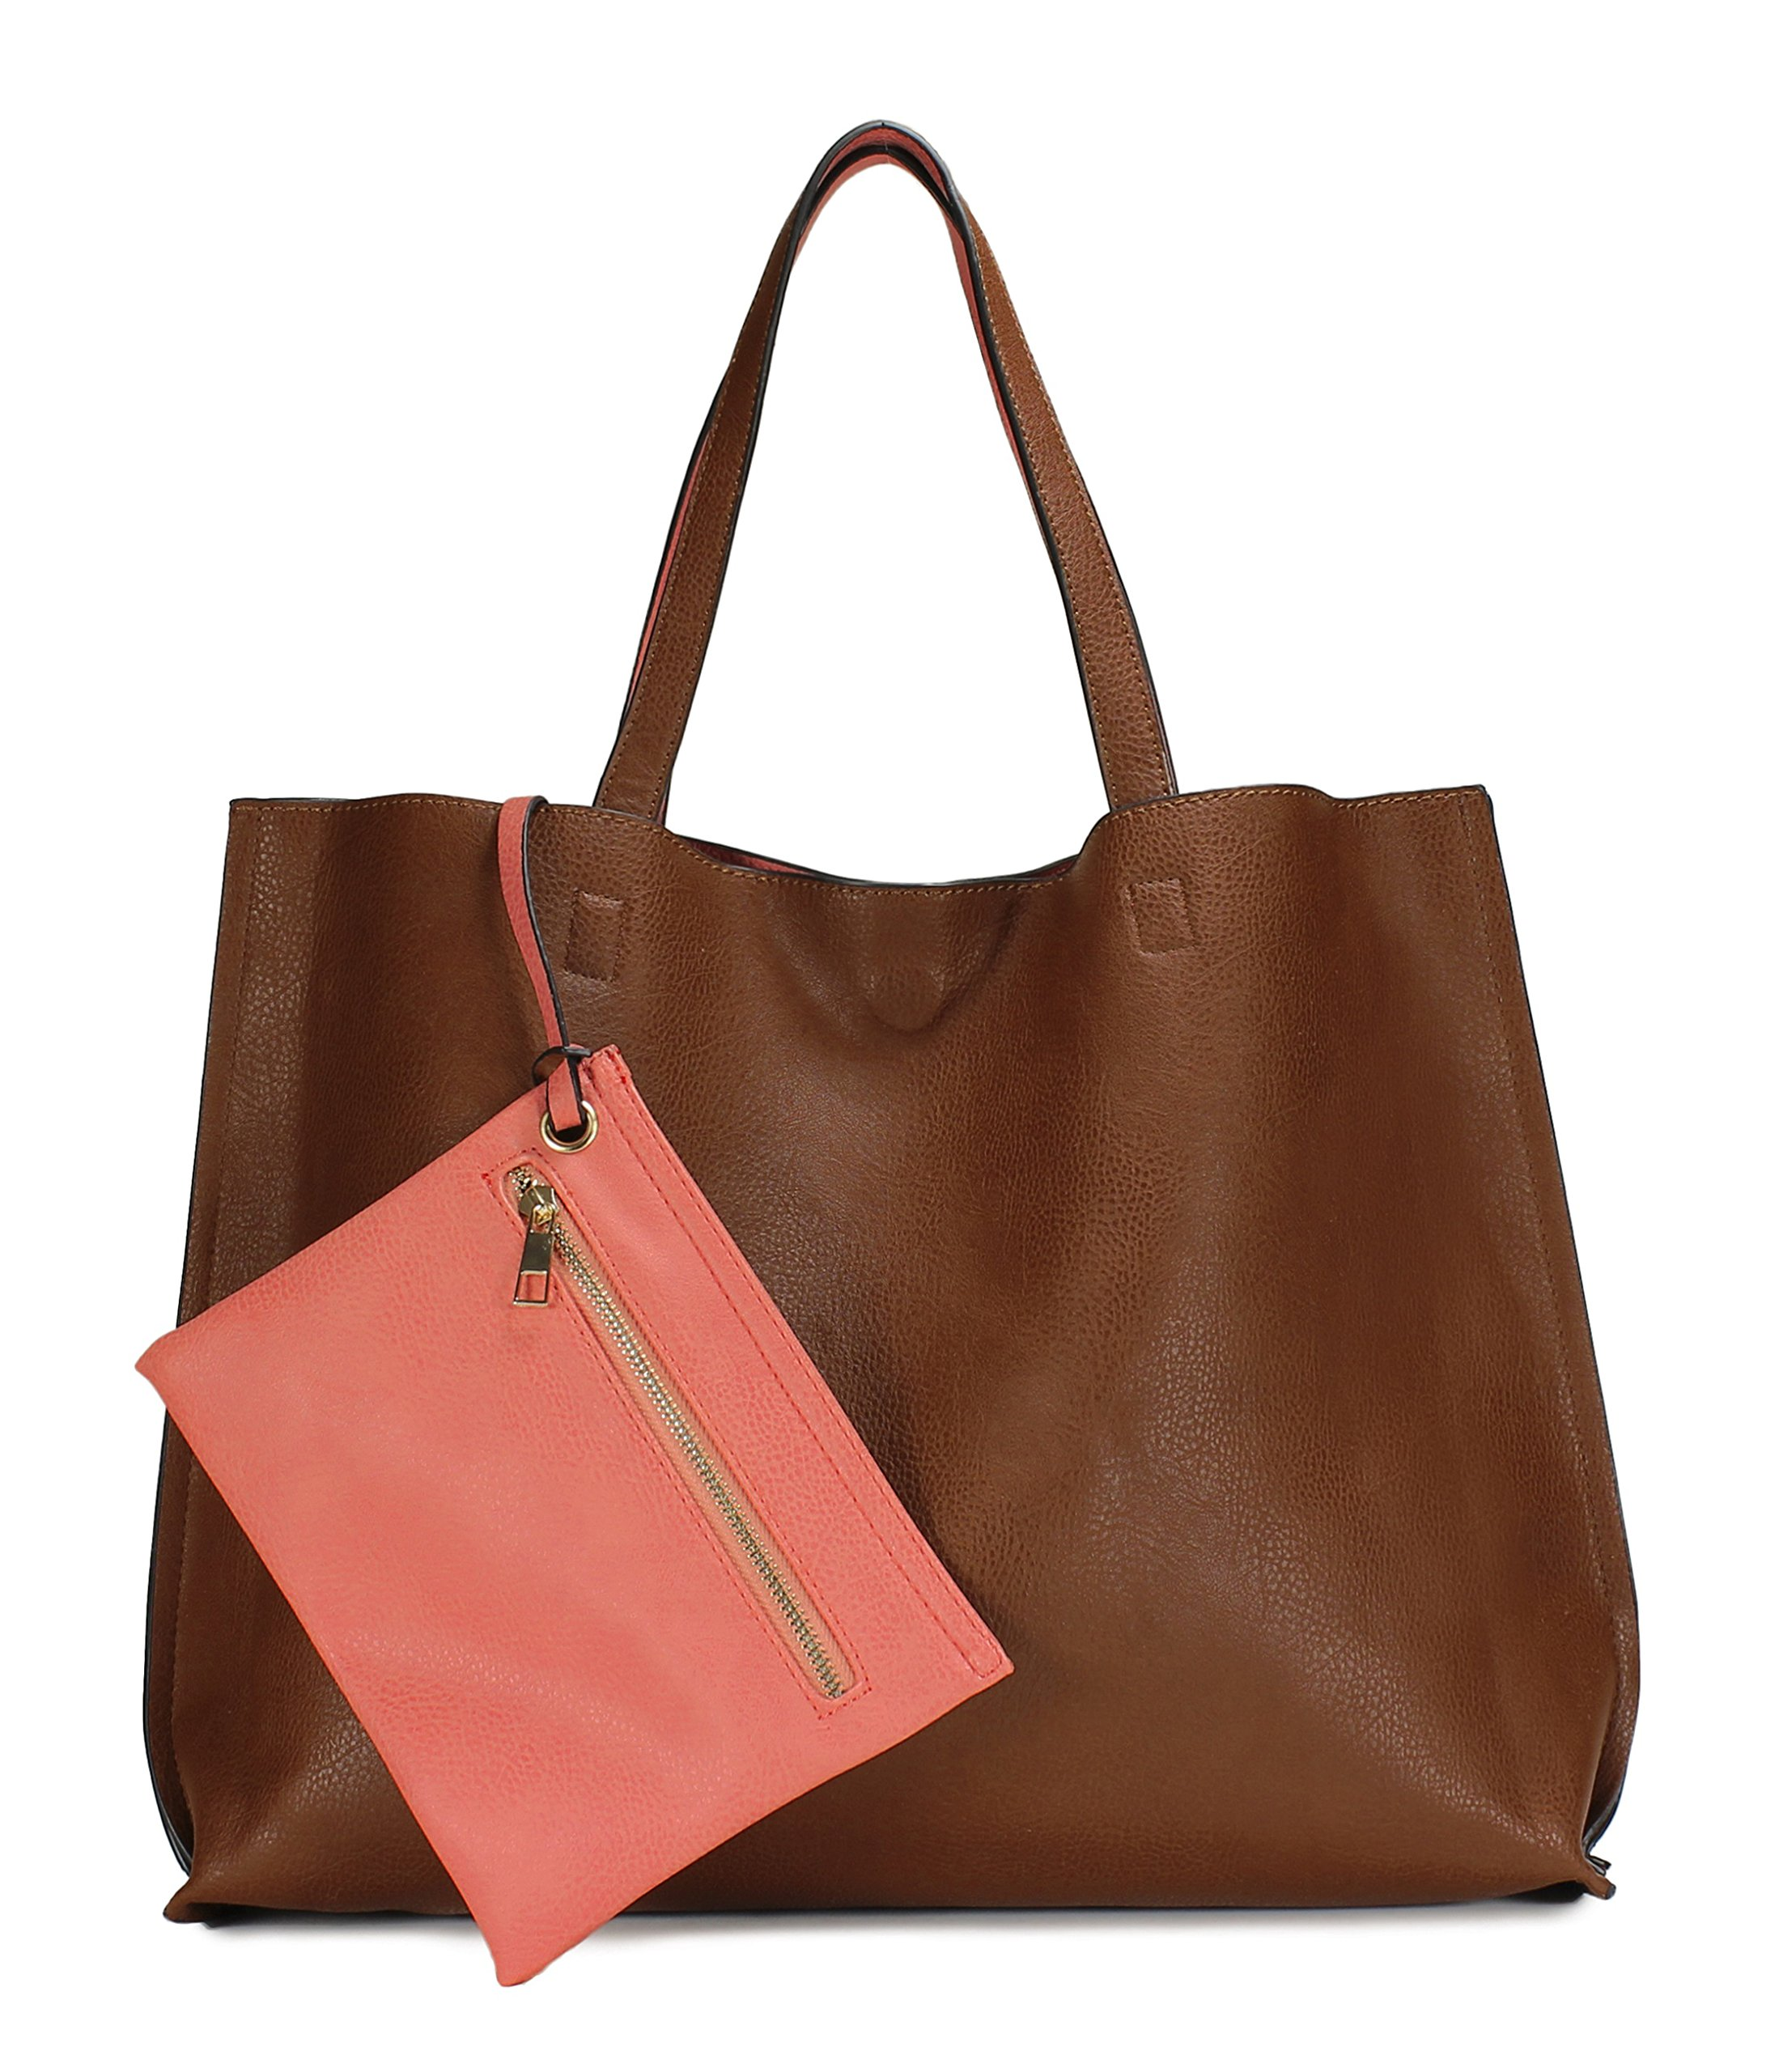 Scarleton Stylish Reversible Tote Handbag H18420452 - Brown/Coral Pink